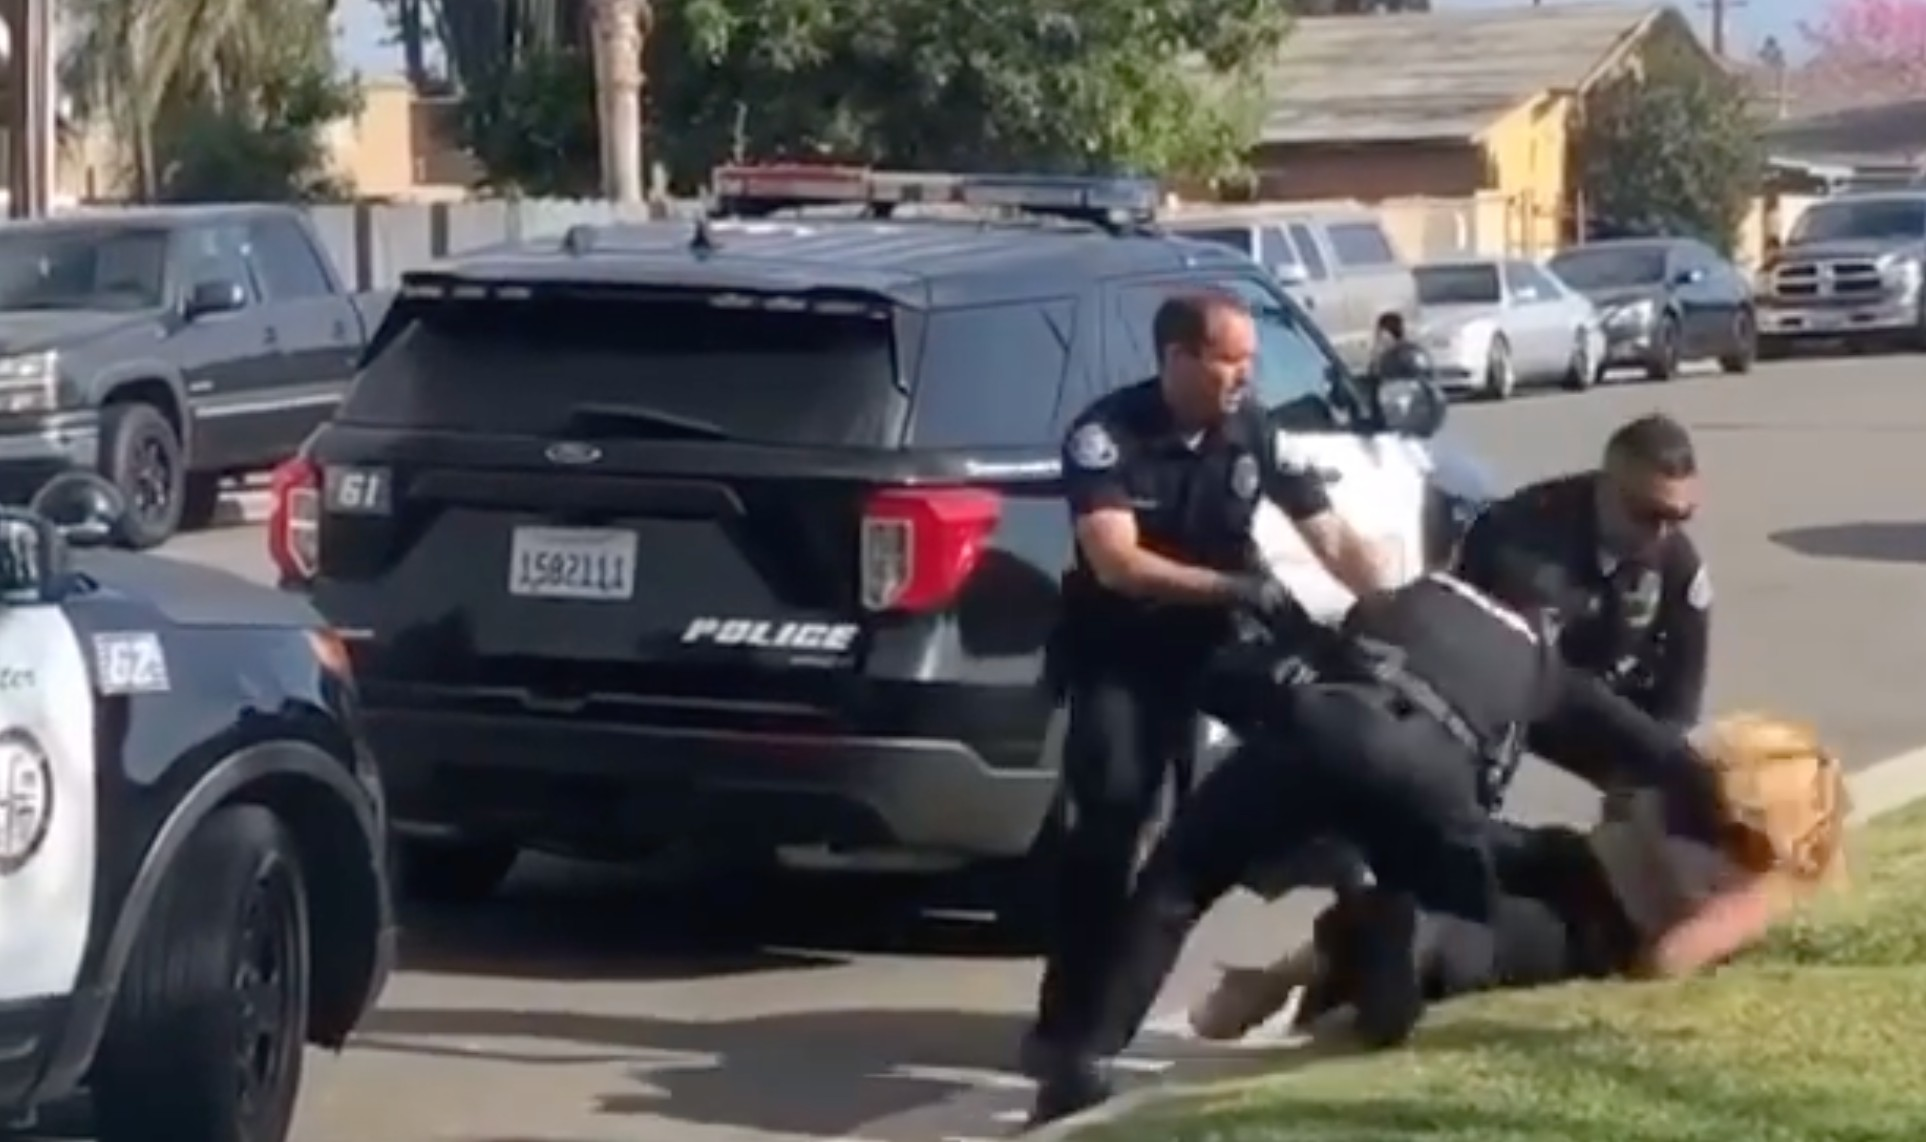 Cell phone footage captures a Westminster Police Department officer punching a woman while arresting her on suspicion of assault on April 22, 2021. (Sandy Armenta)